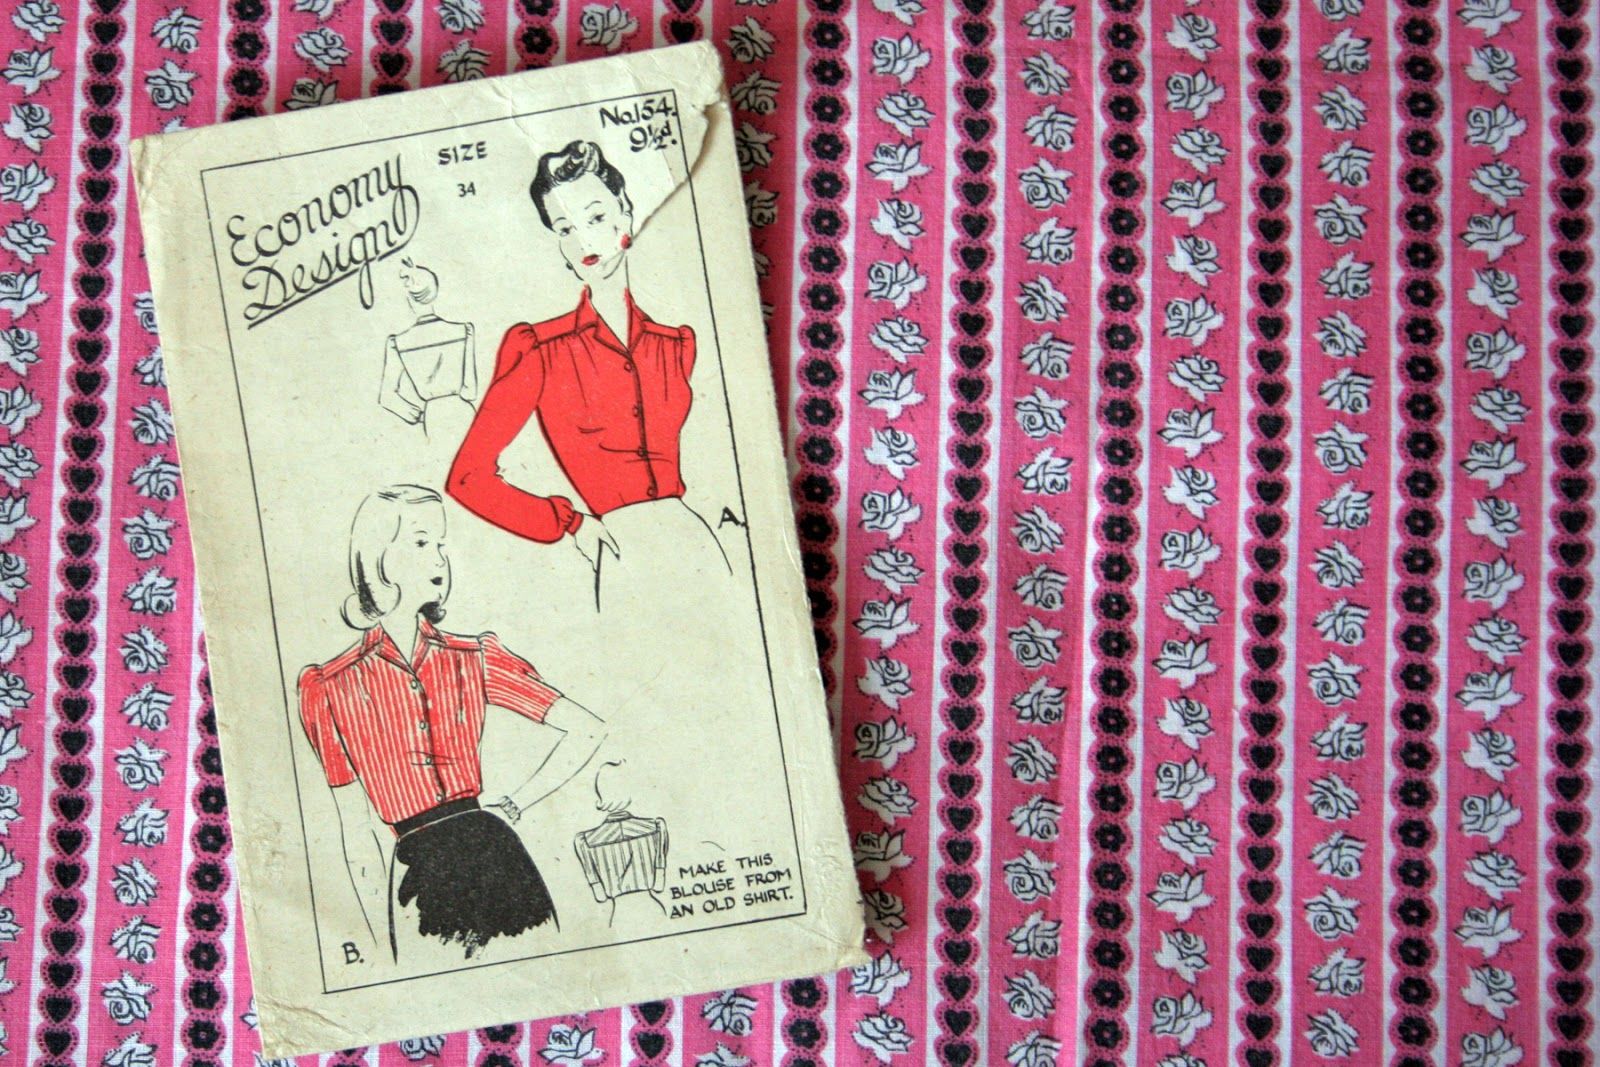 Fall For Cotton A Sewing Challenge LIghtfields Blouse pattern